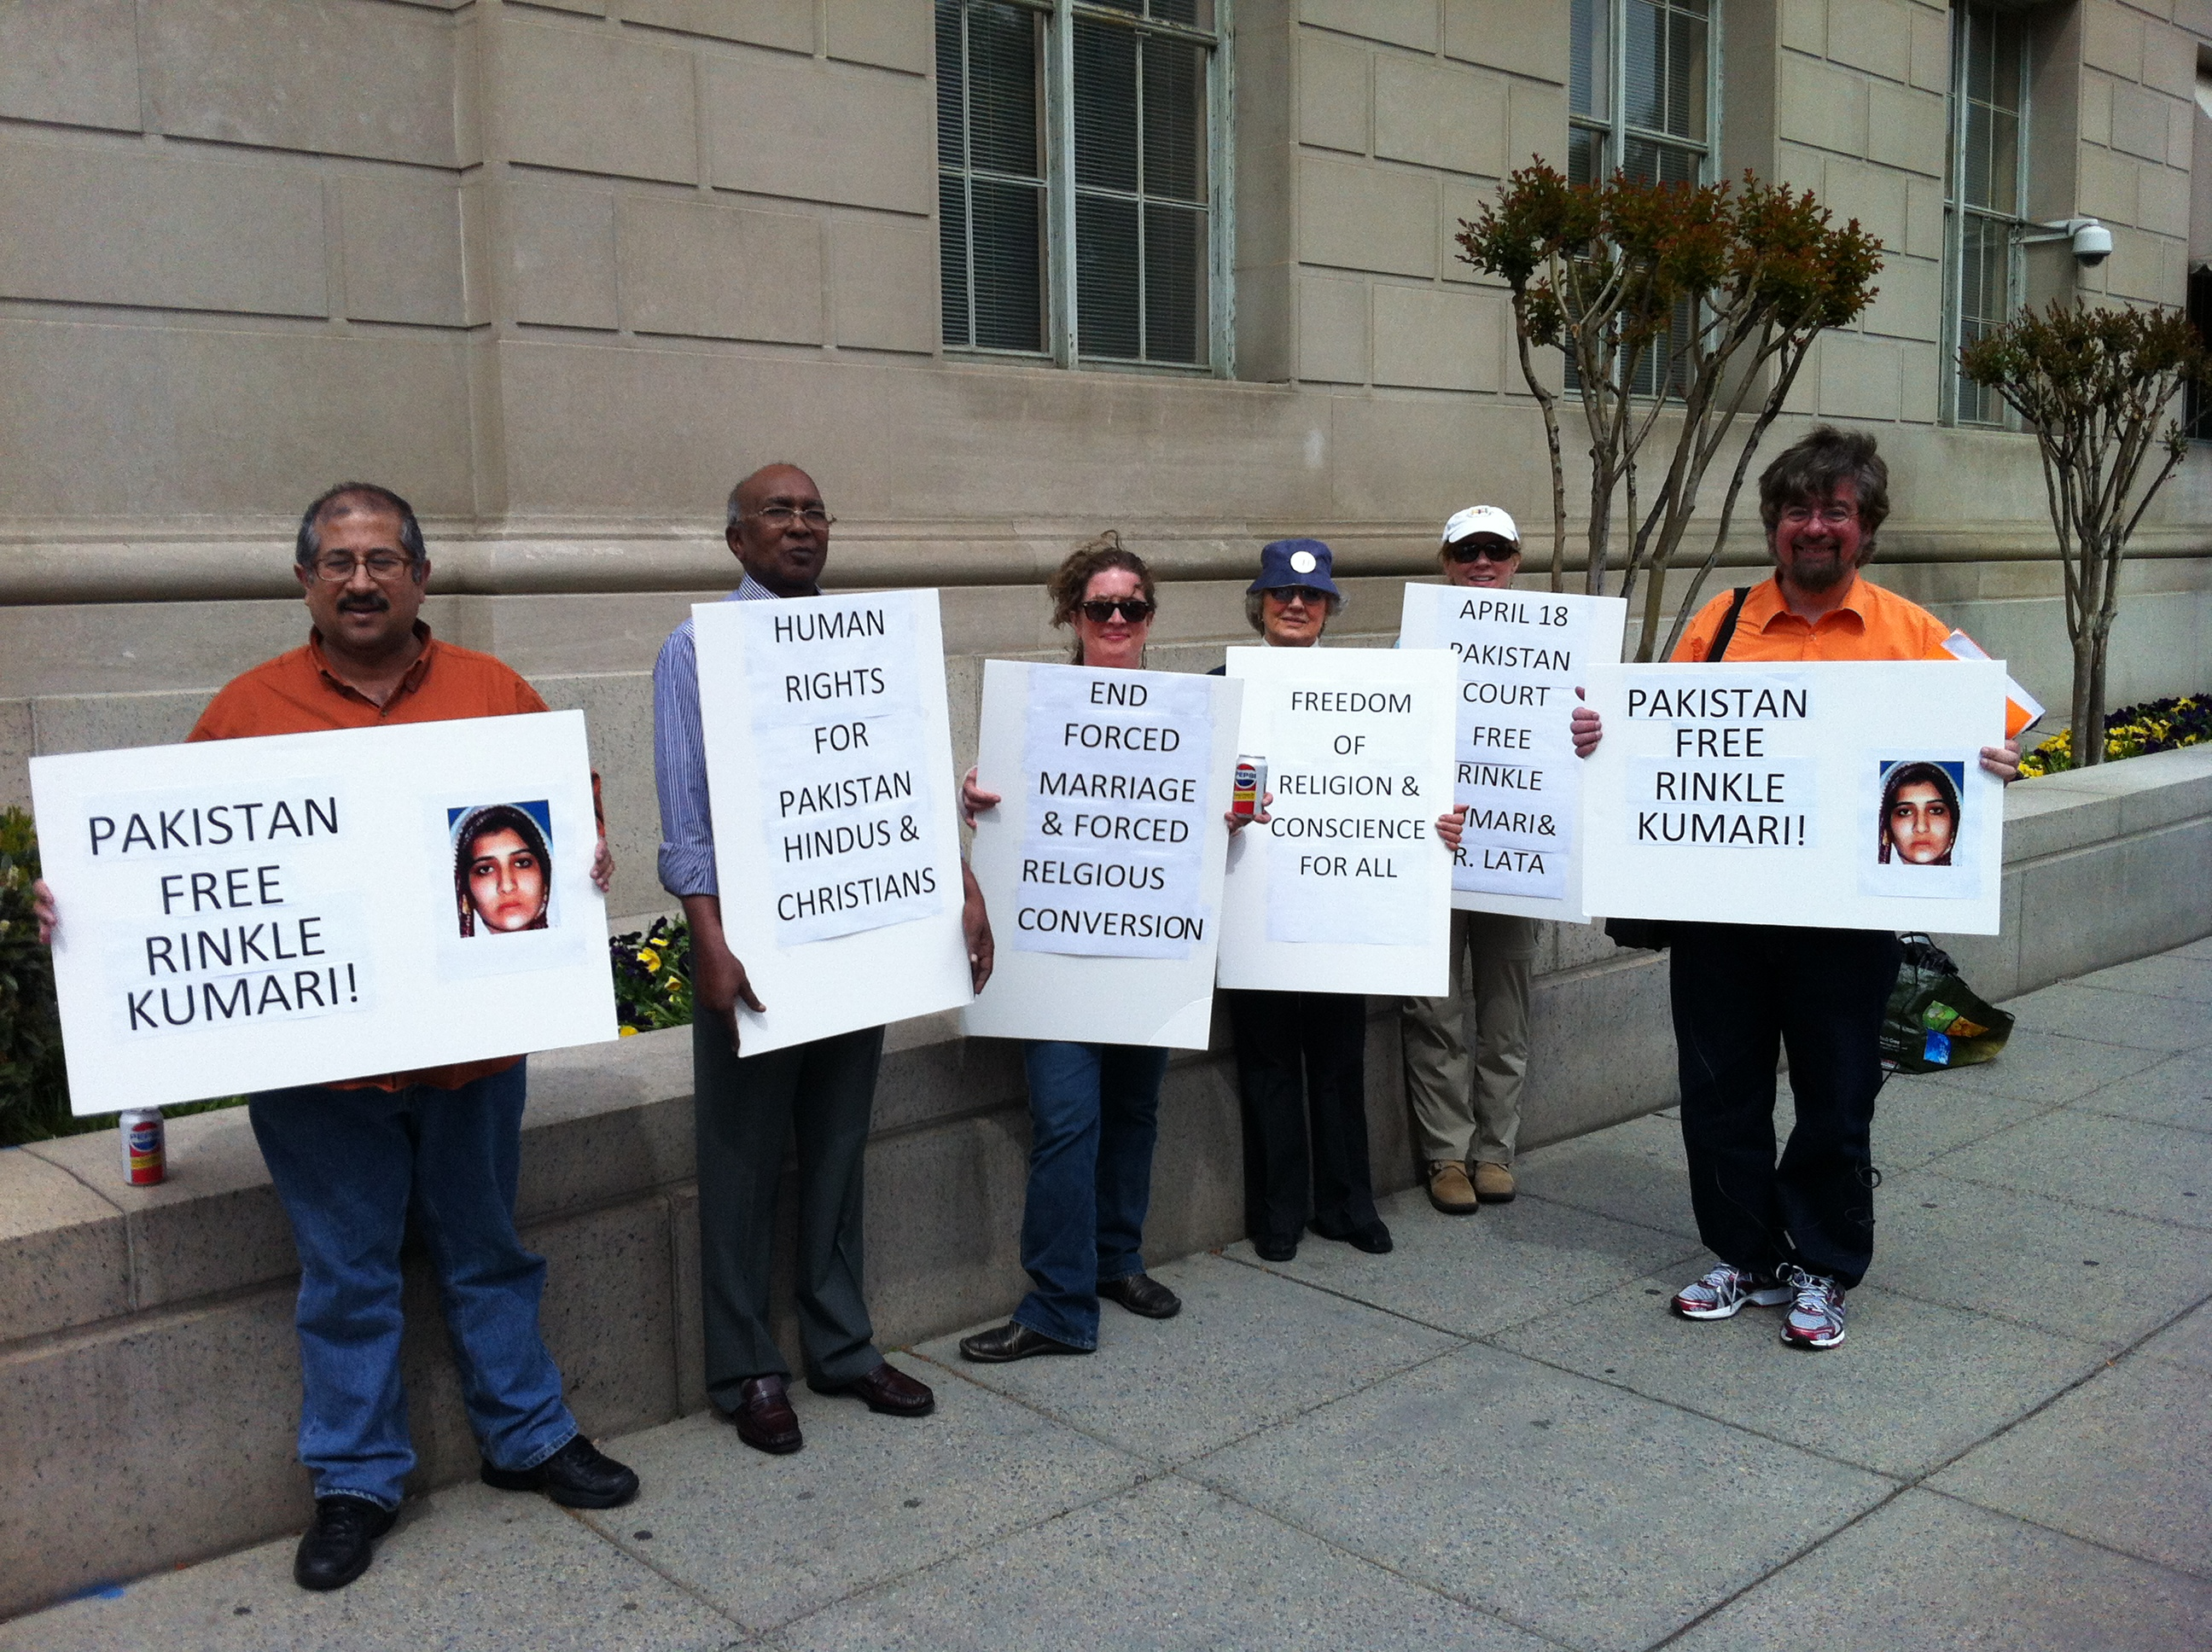 DC: Activists Support Rights for Pakistan Hindus, Christians, and Religious Minorities